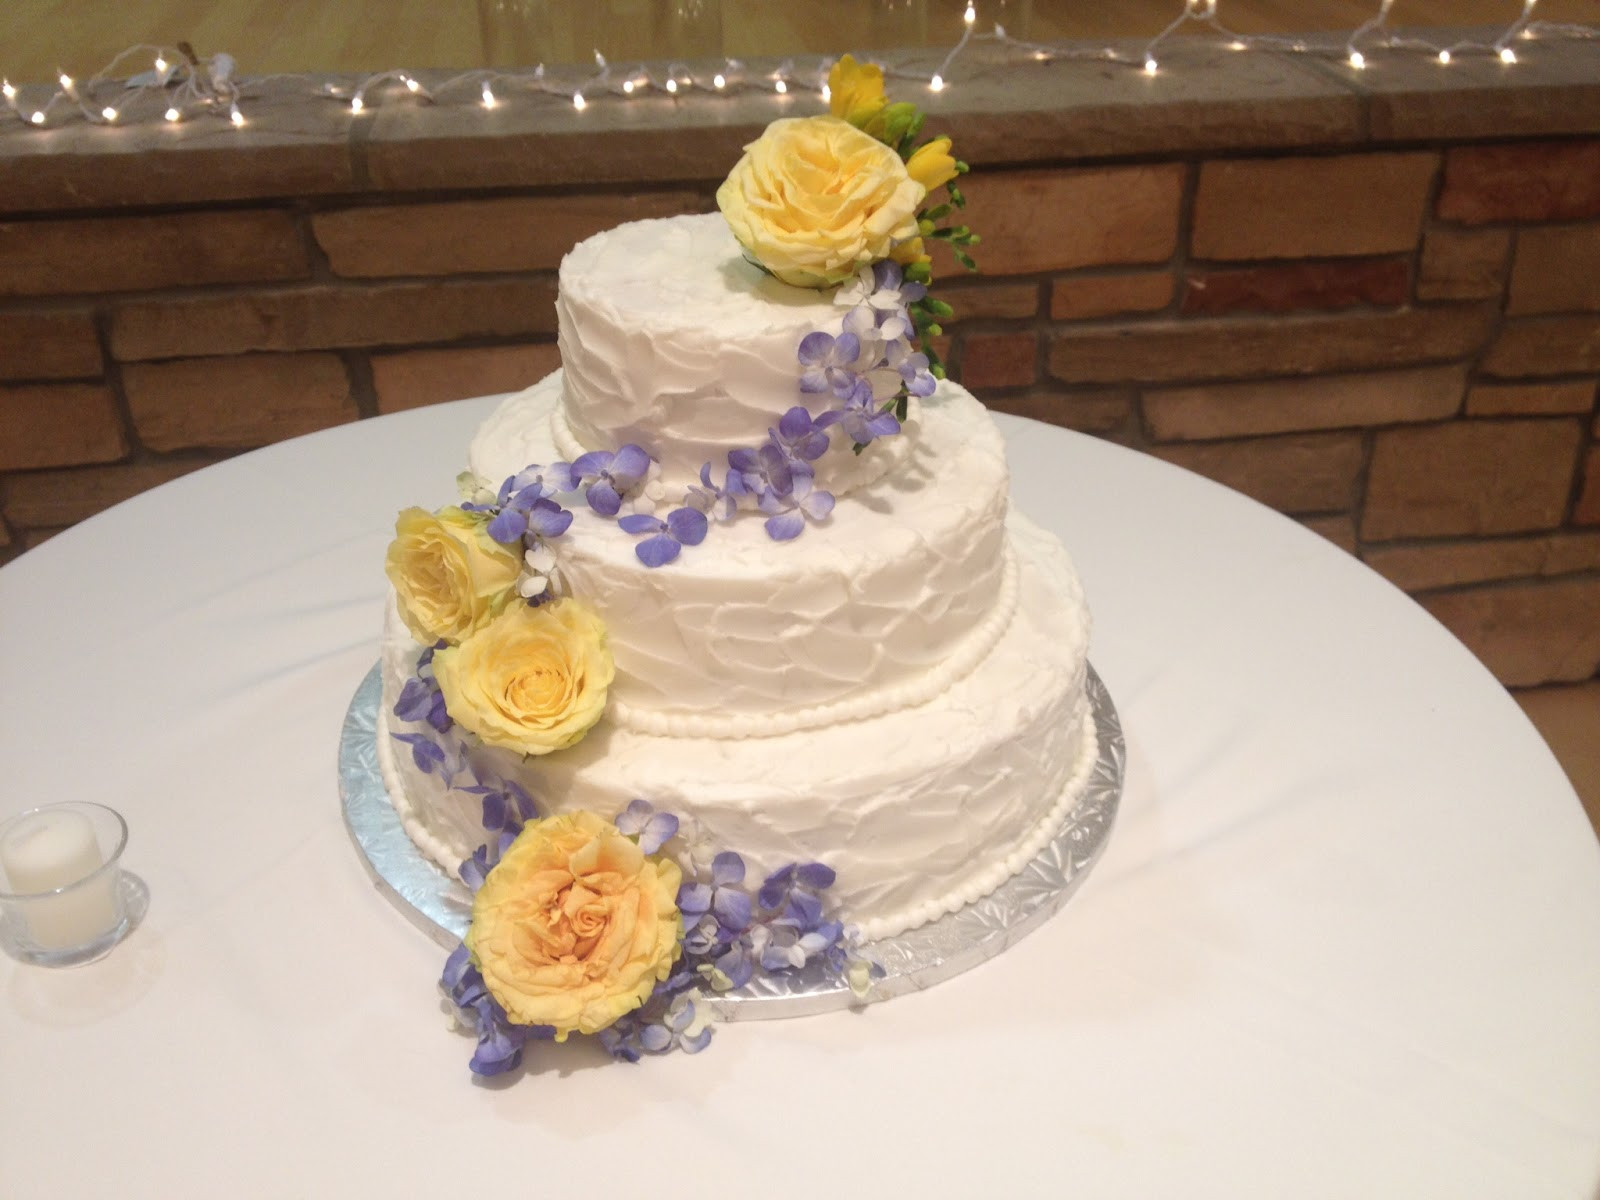 Wedding Cakes Alexandria Va  Wedding Cakes Alexandria Va